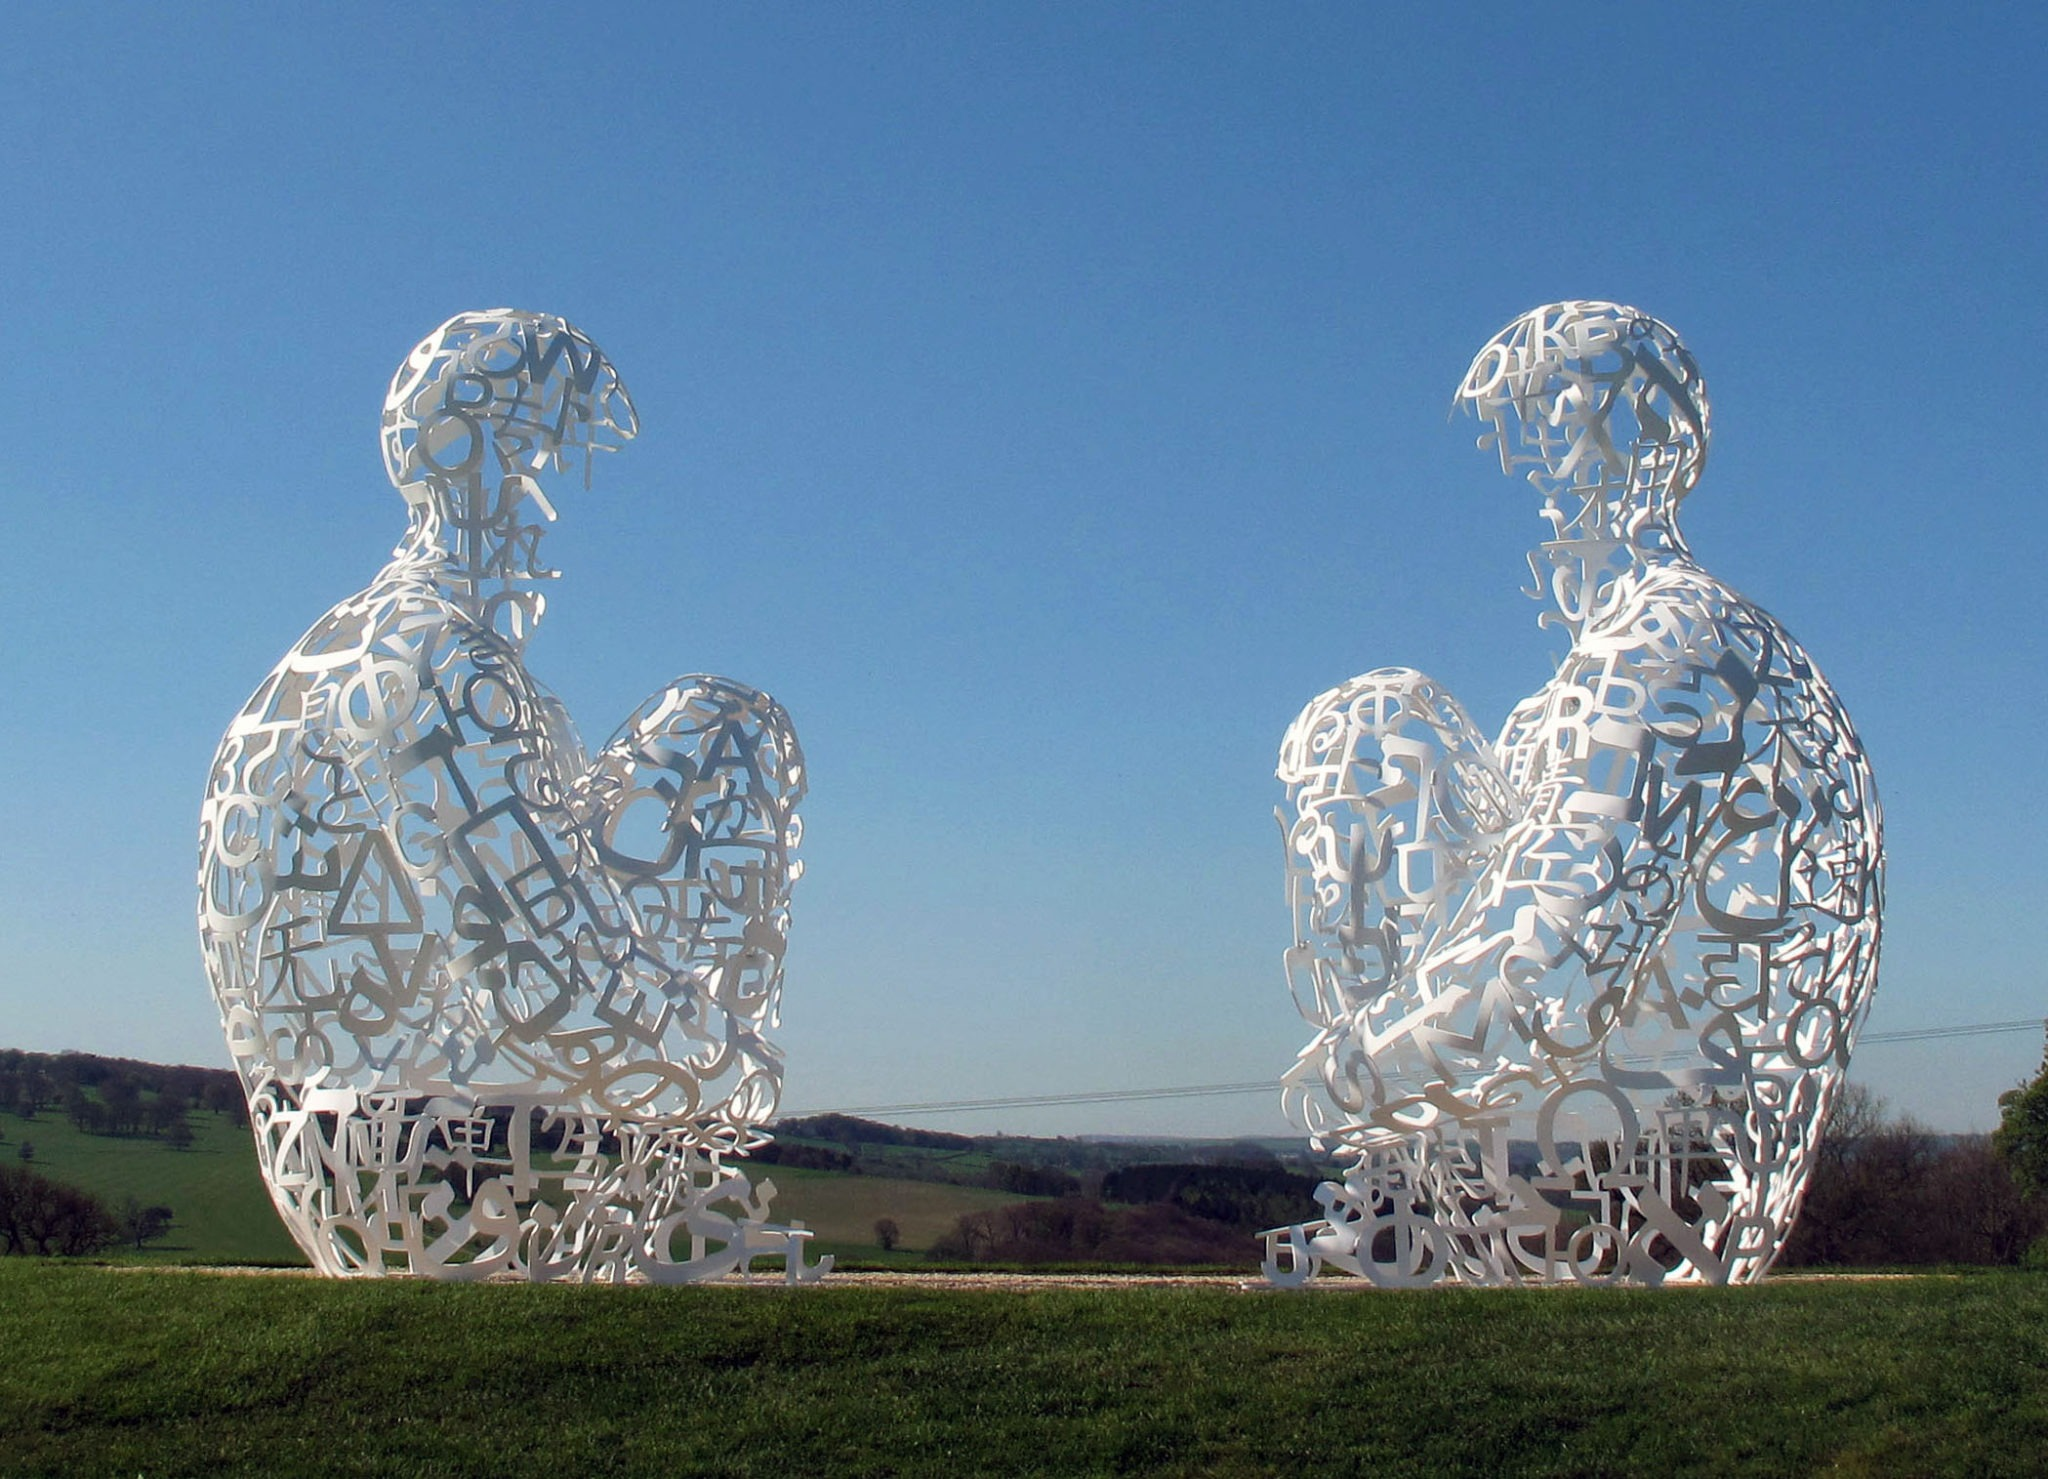 SPIEGEL 2010, Painted stainless steel, 148.4 x 92.5 x 96.5 inches (each): © Jaume Plensa. Courtesy Galerie Lelong, New York